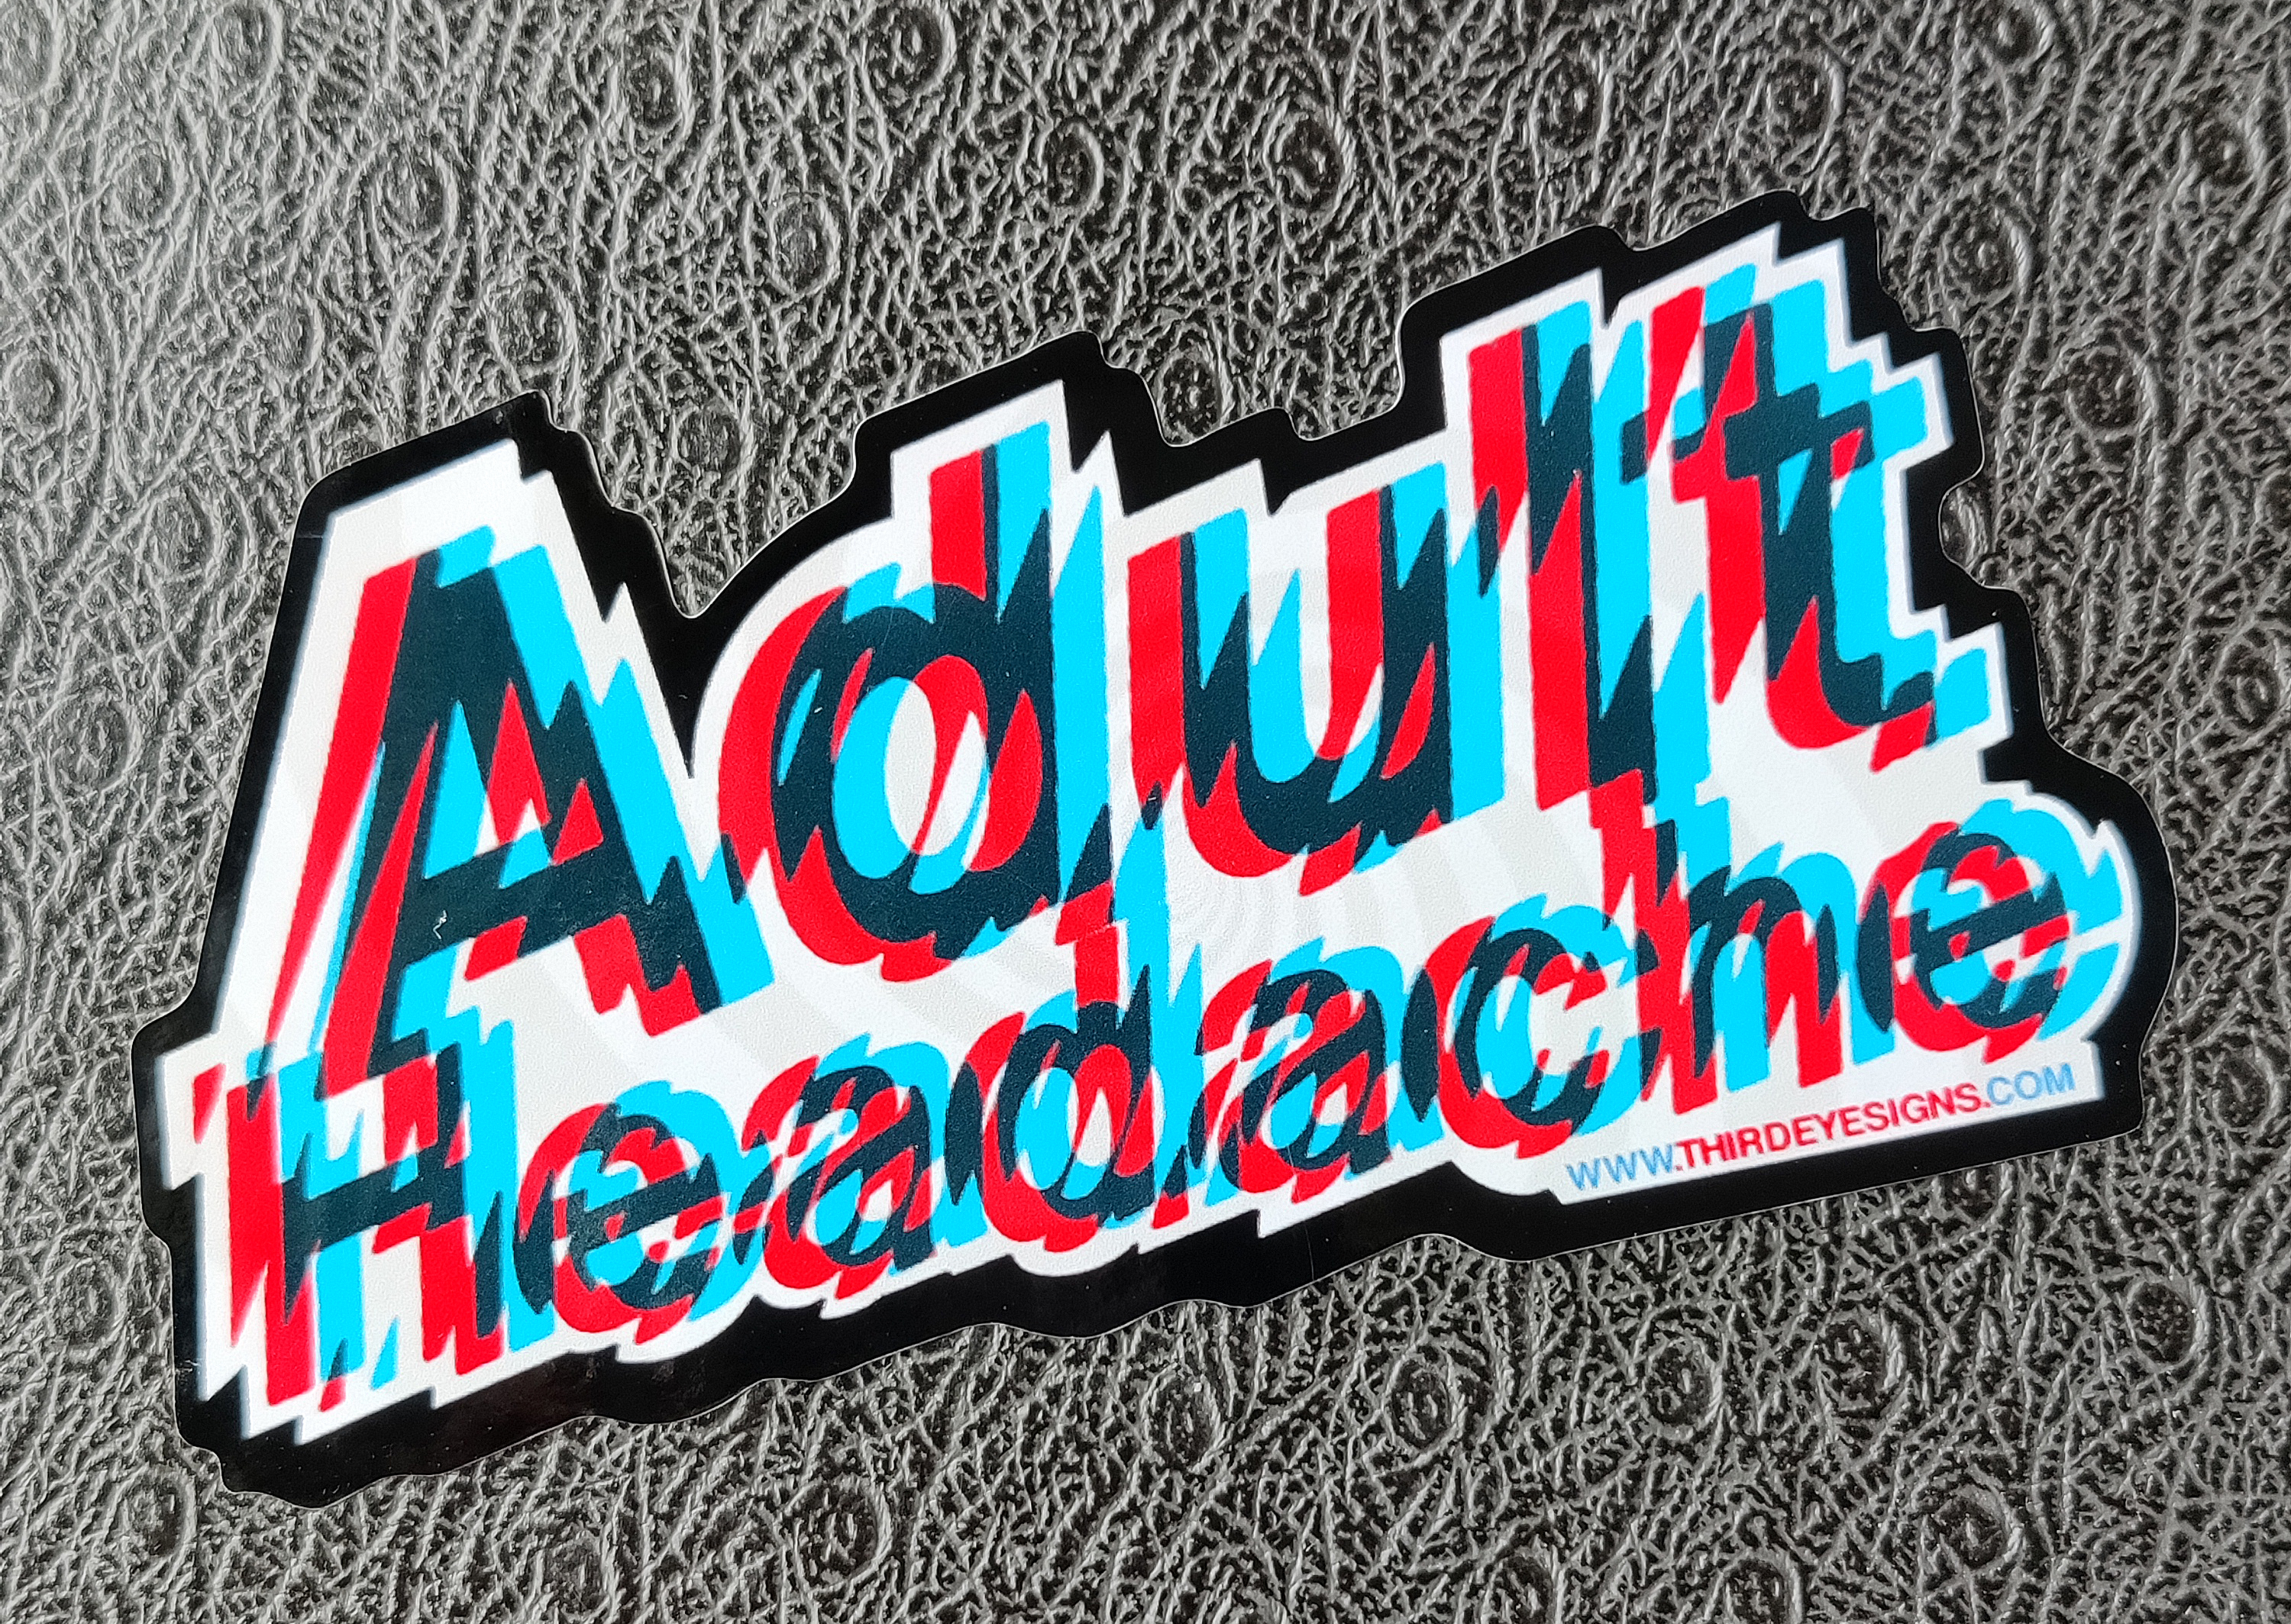 'Adult Headache' 10cm laminated vinyl sticker